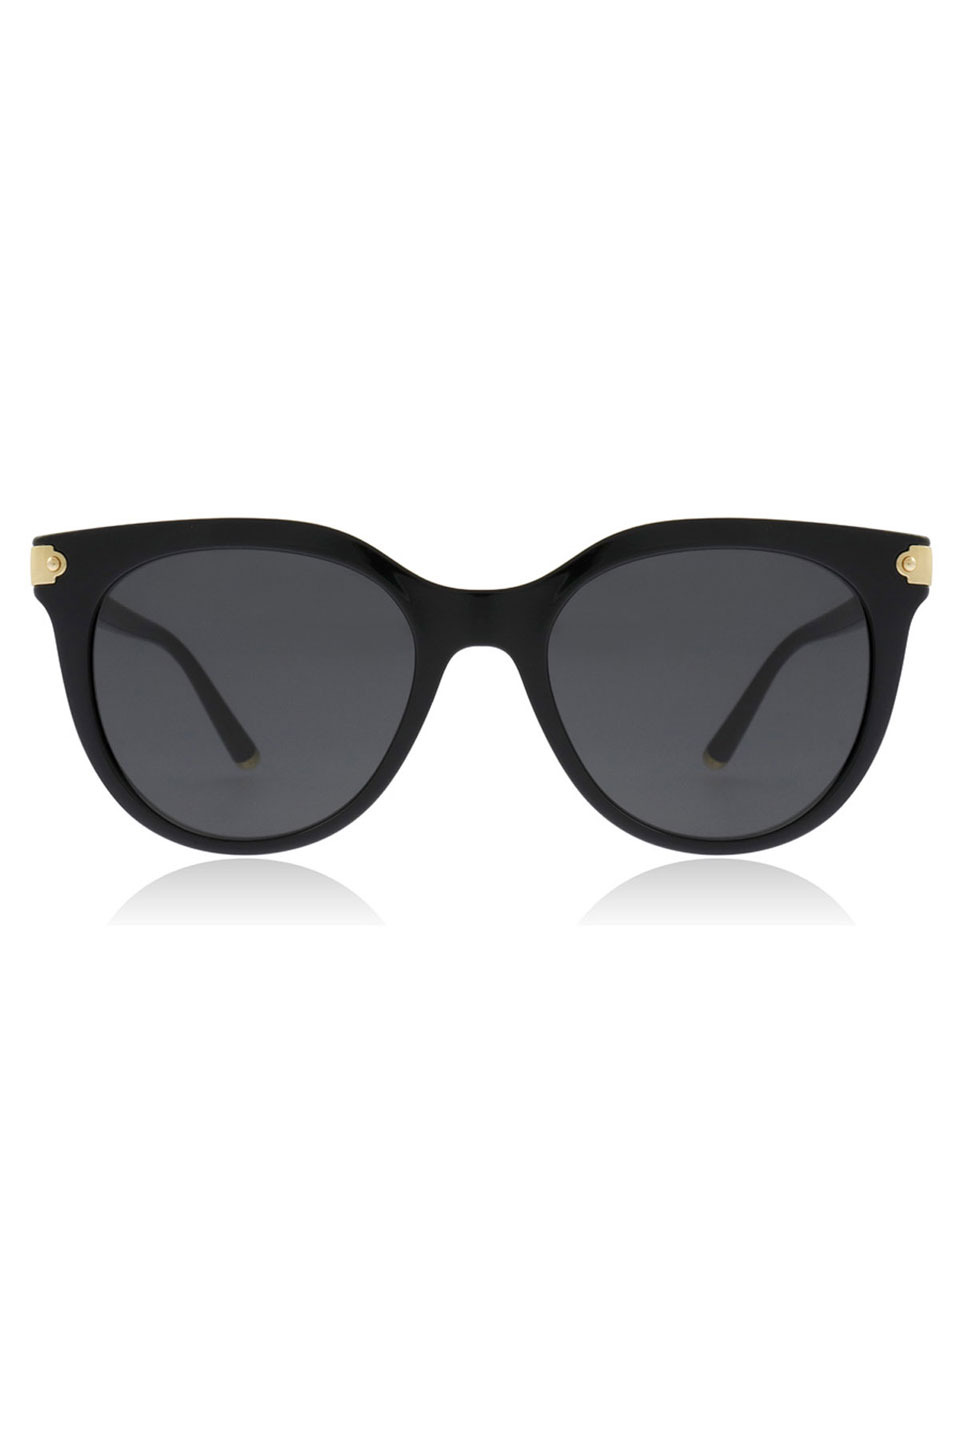 0b4a1c16a19 Dolce Gabbana Ladies Sunglasses In Black And Gray